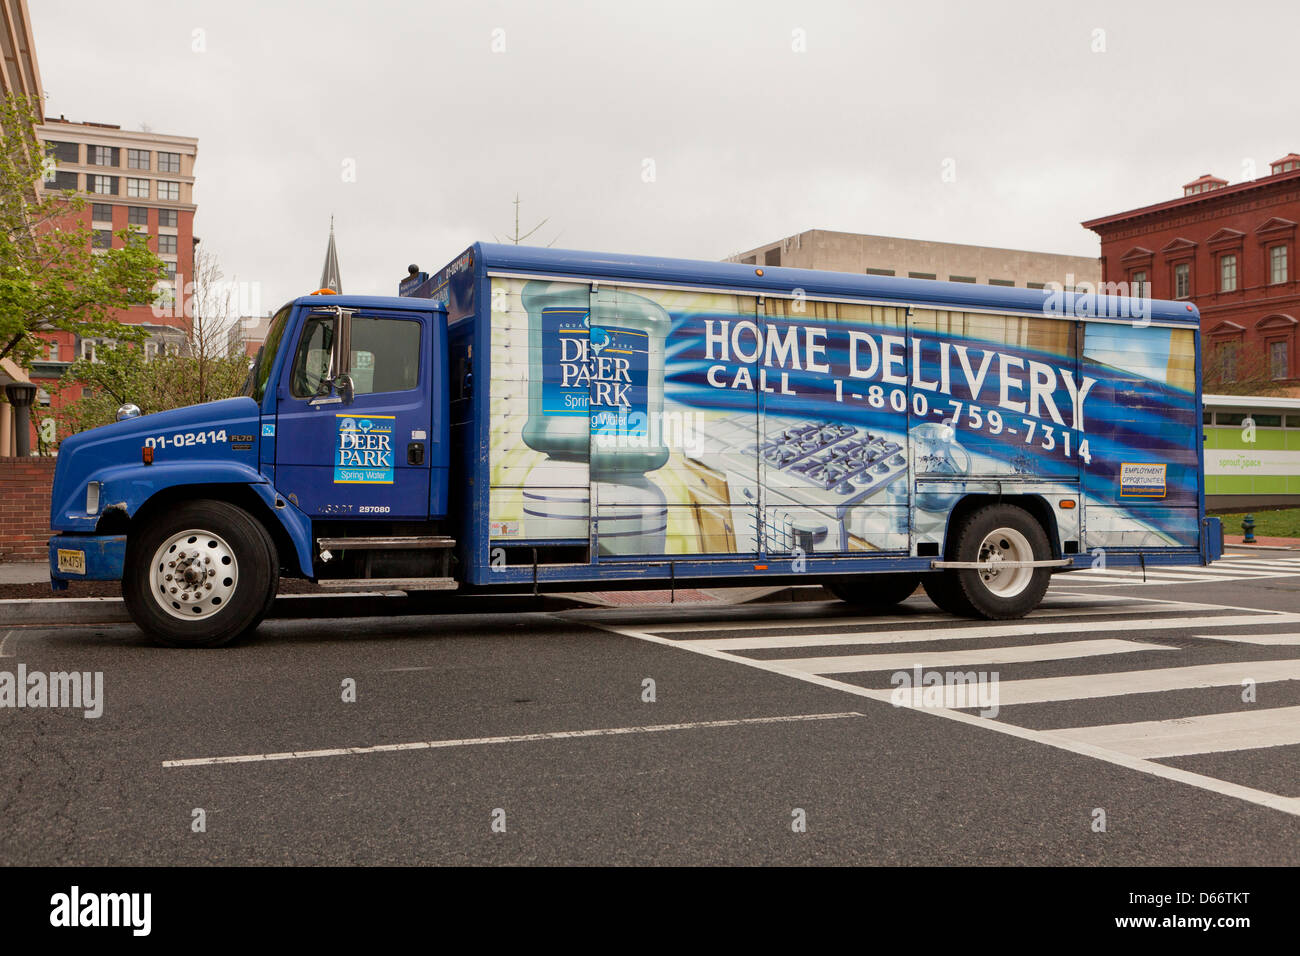 Deer Park Bottled Water Home Delivery Truck